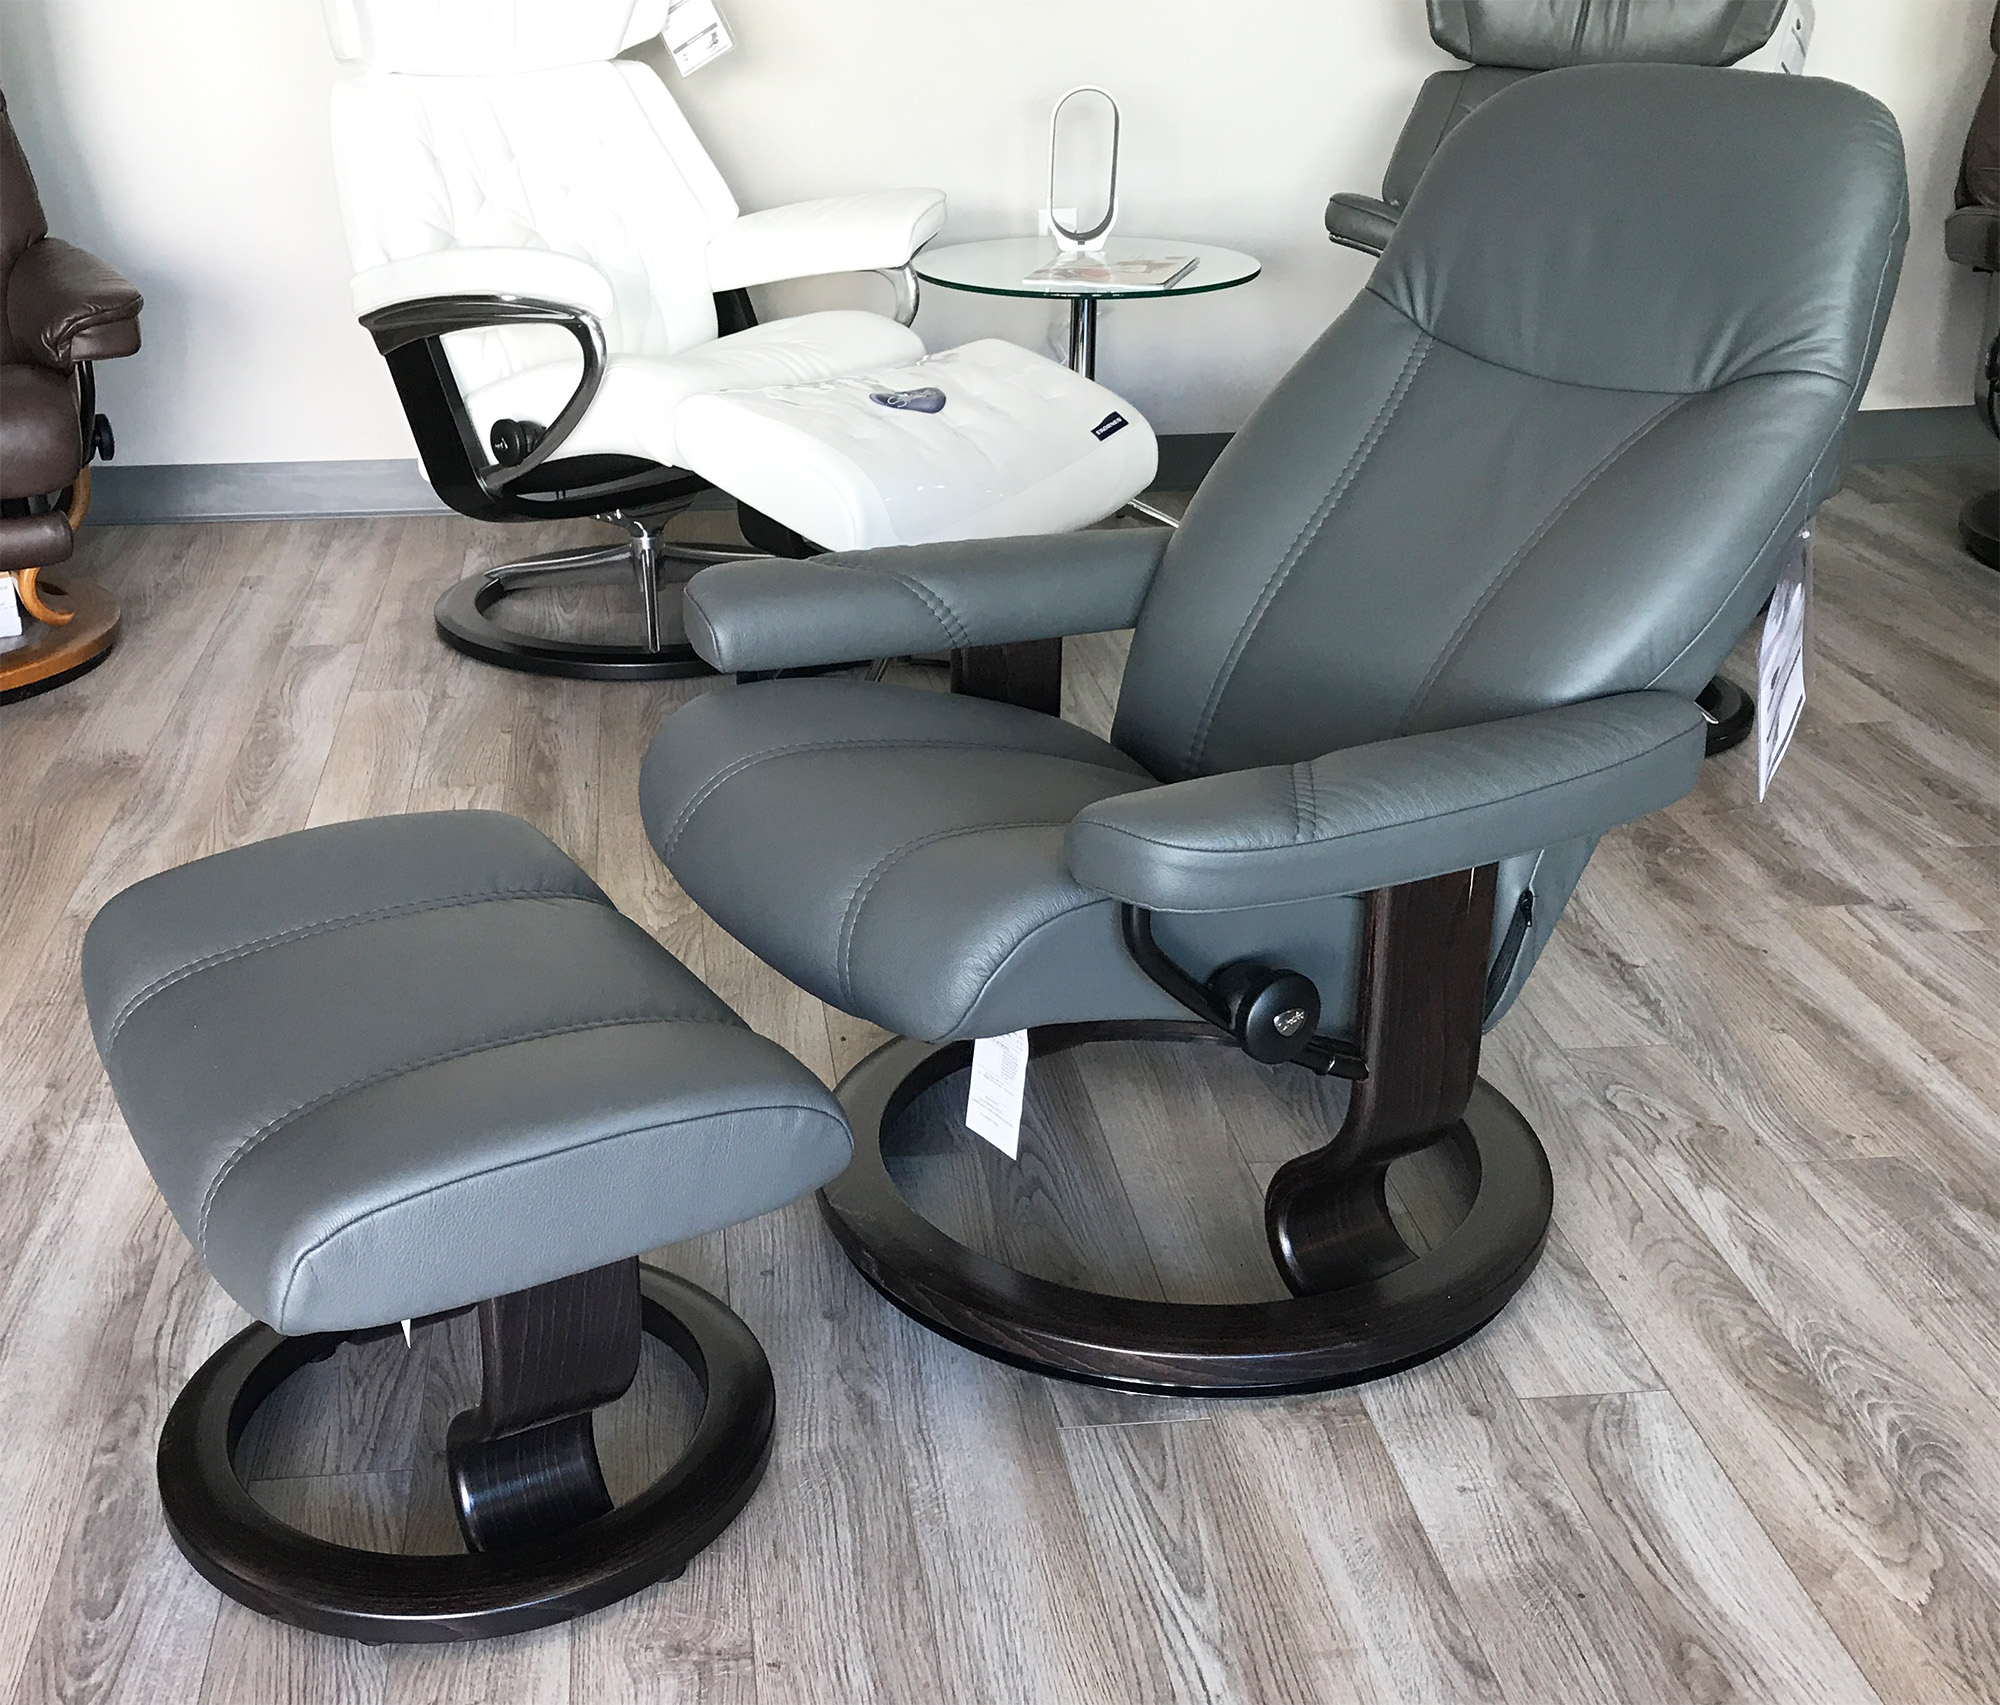 stressless consul recliner chair and ottoman batick grey leather by ekornes. stressless consul recliner chair and ottoman batick grey leather